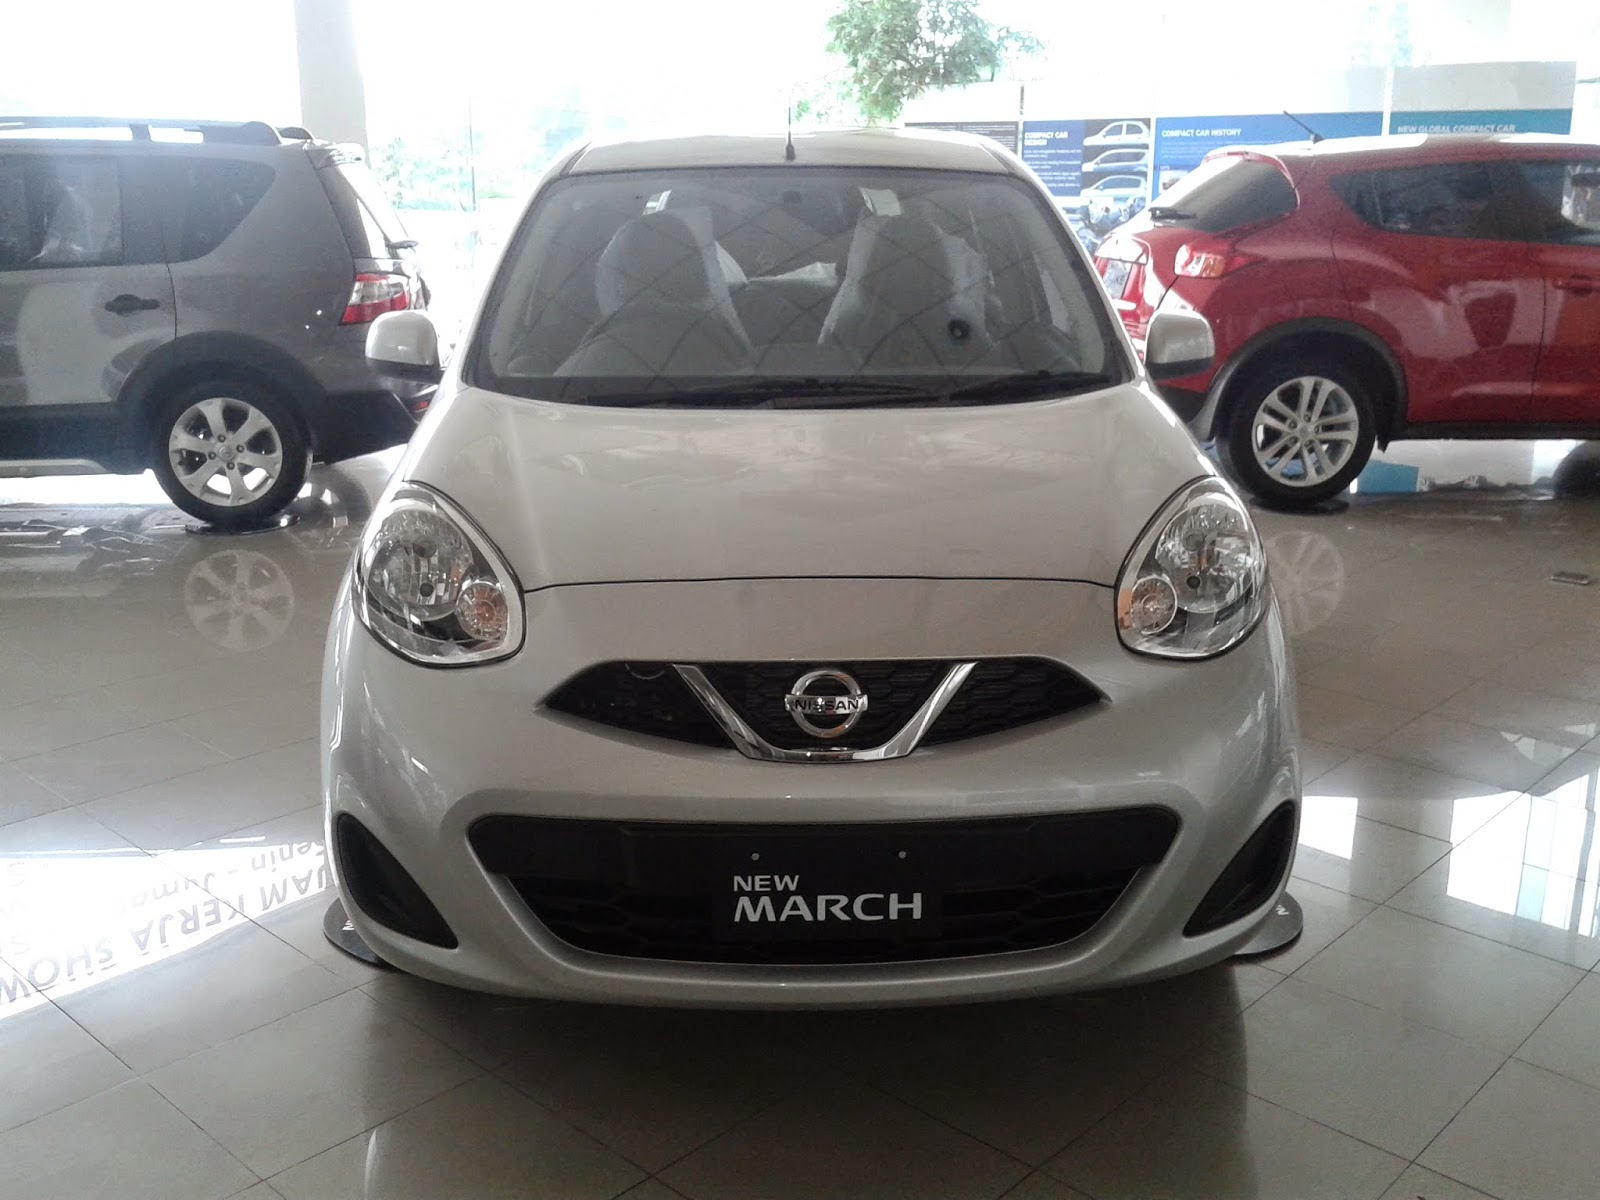 Eksterior Nissan March 1200 cc